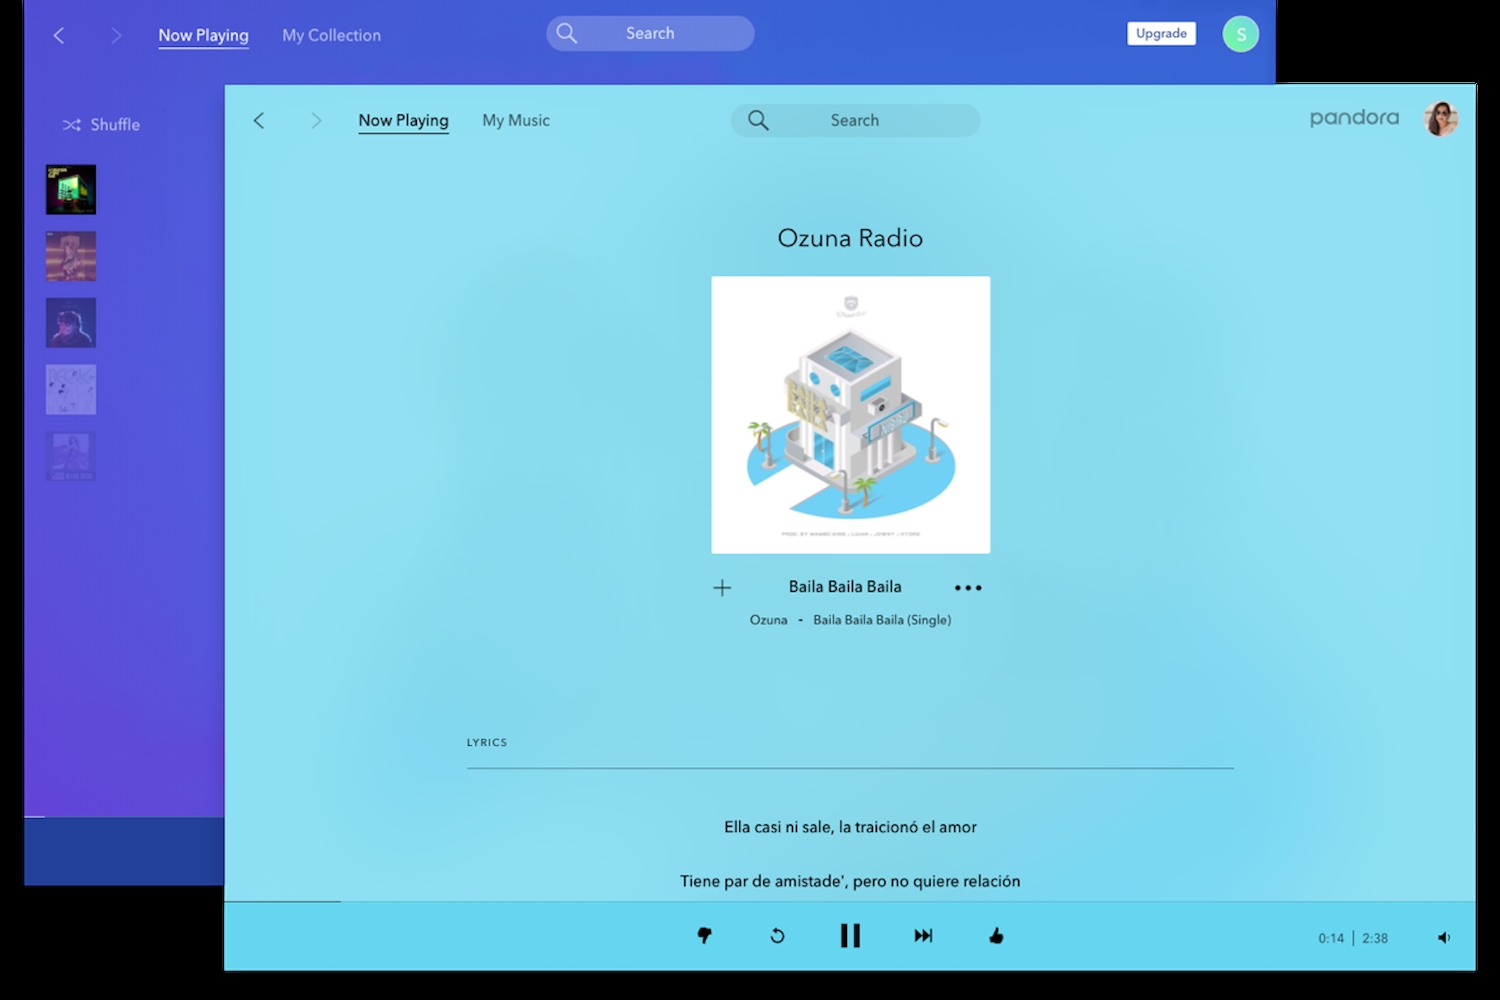 Pandora launches a new native Mac app